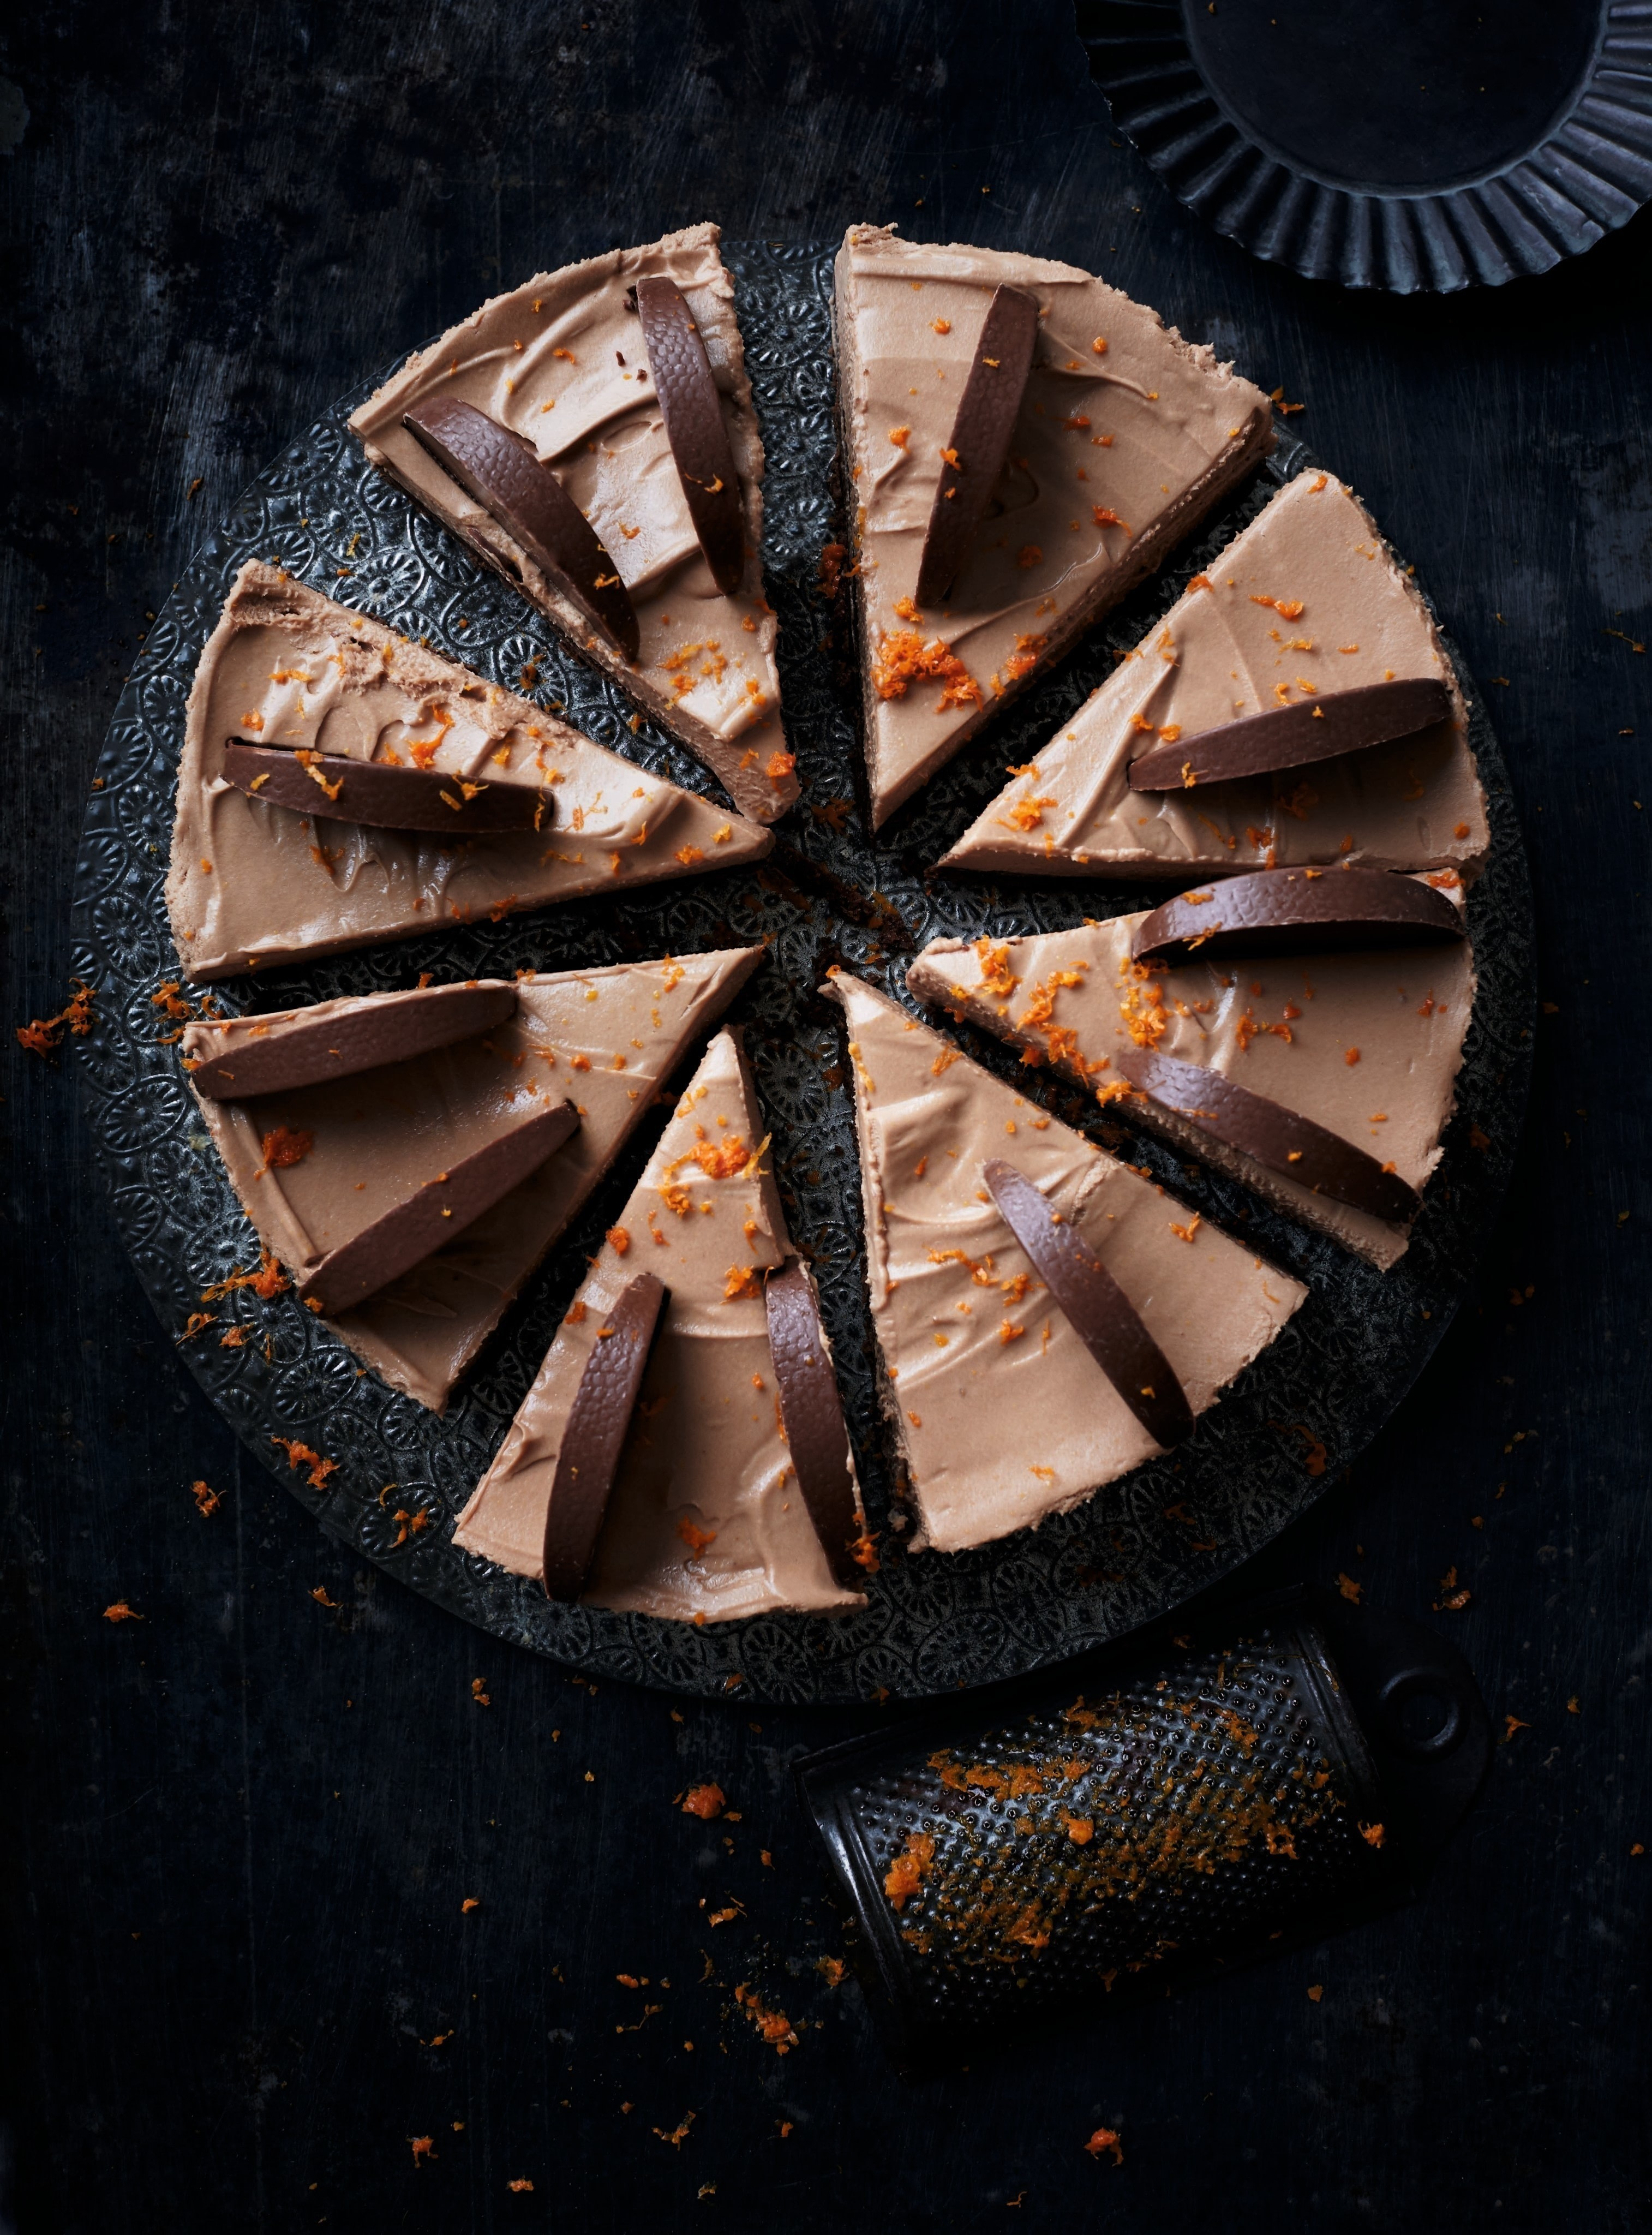 Chocolate Orange Cheesecake 183 Extract From Tanya Bakes By Tanya Burr 183 How To Bake A Cheesecake